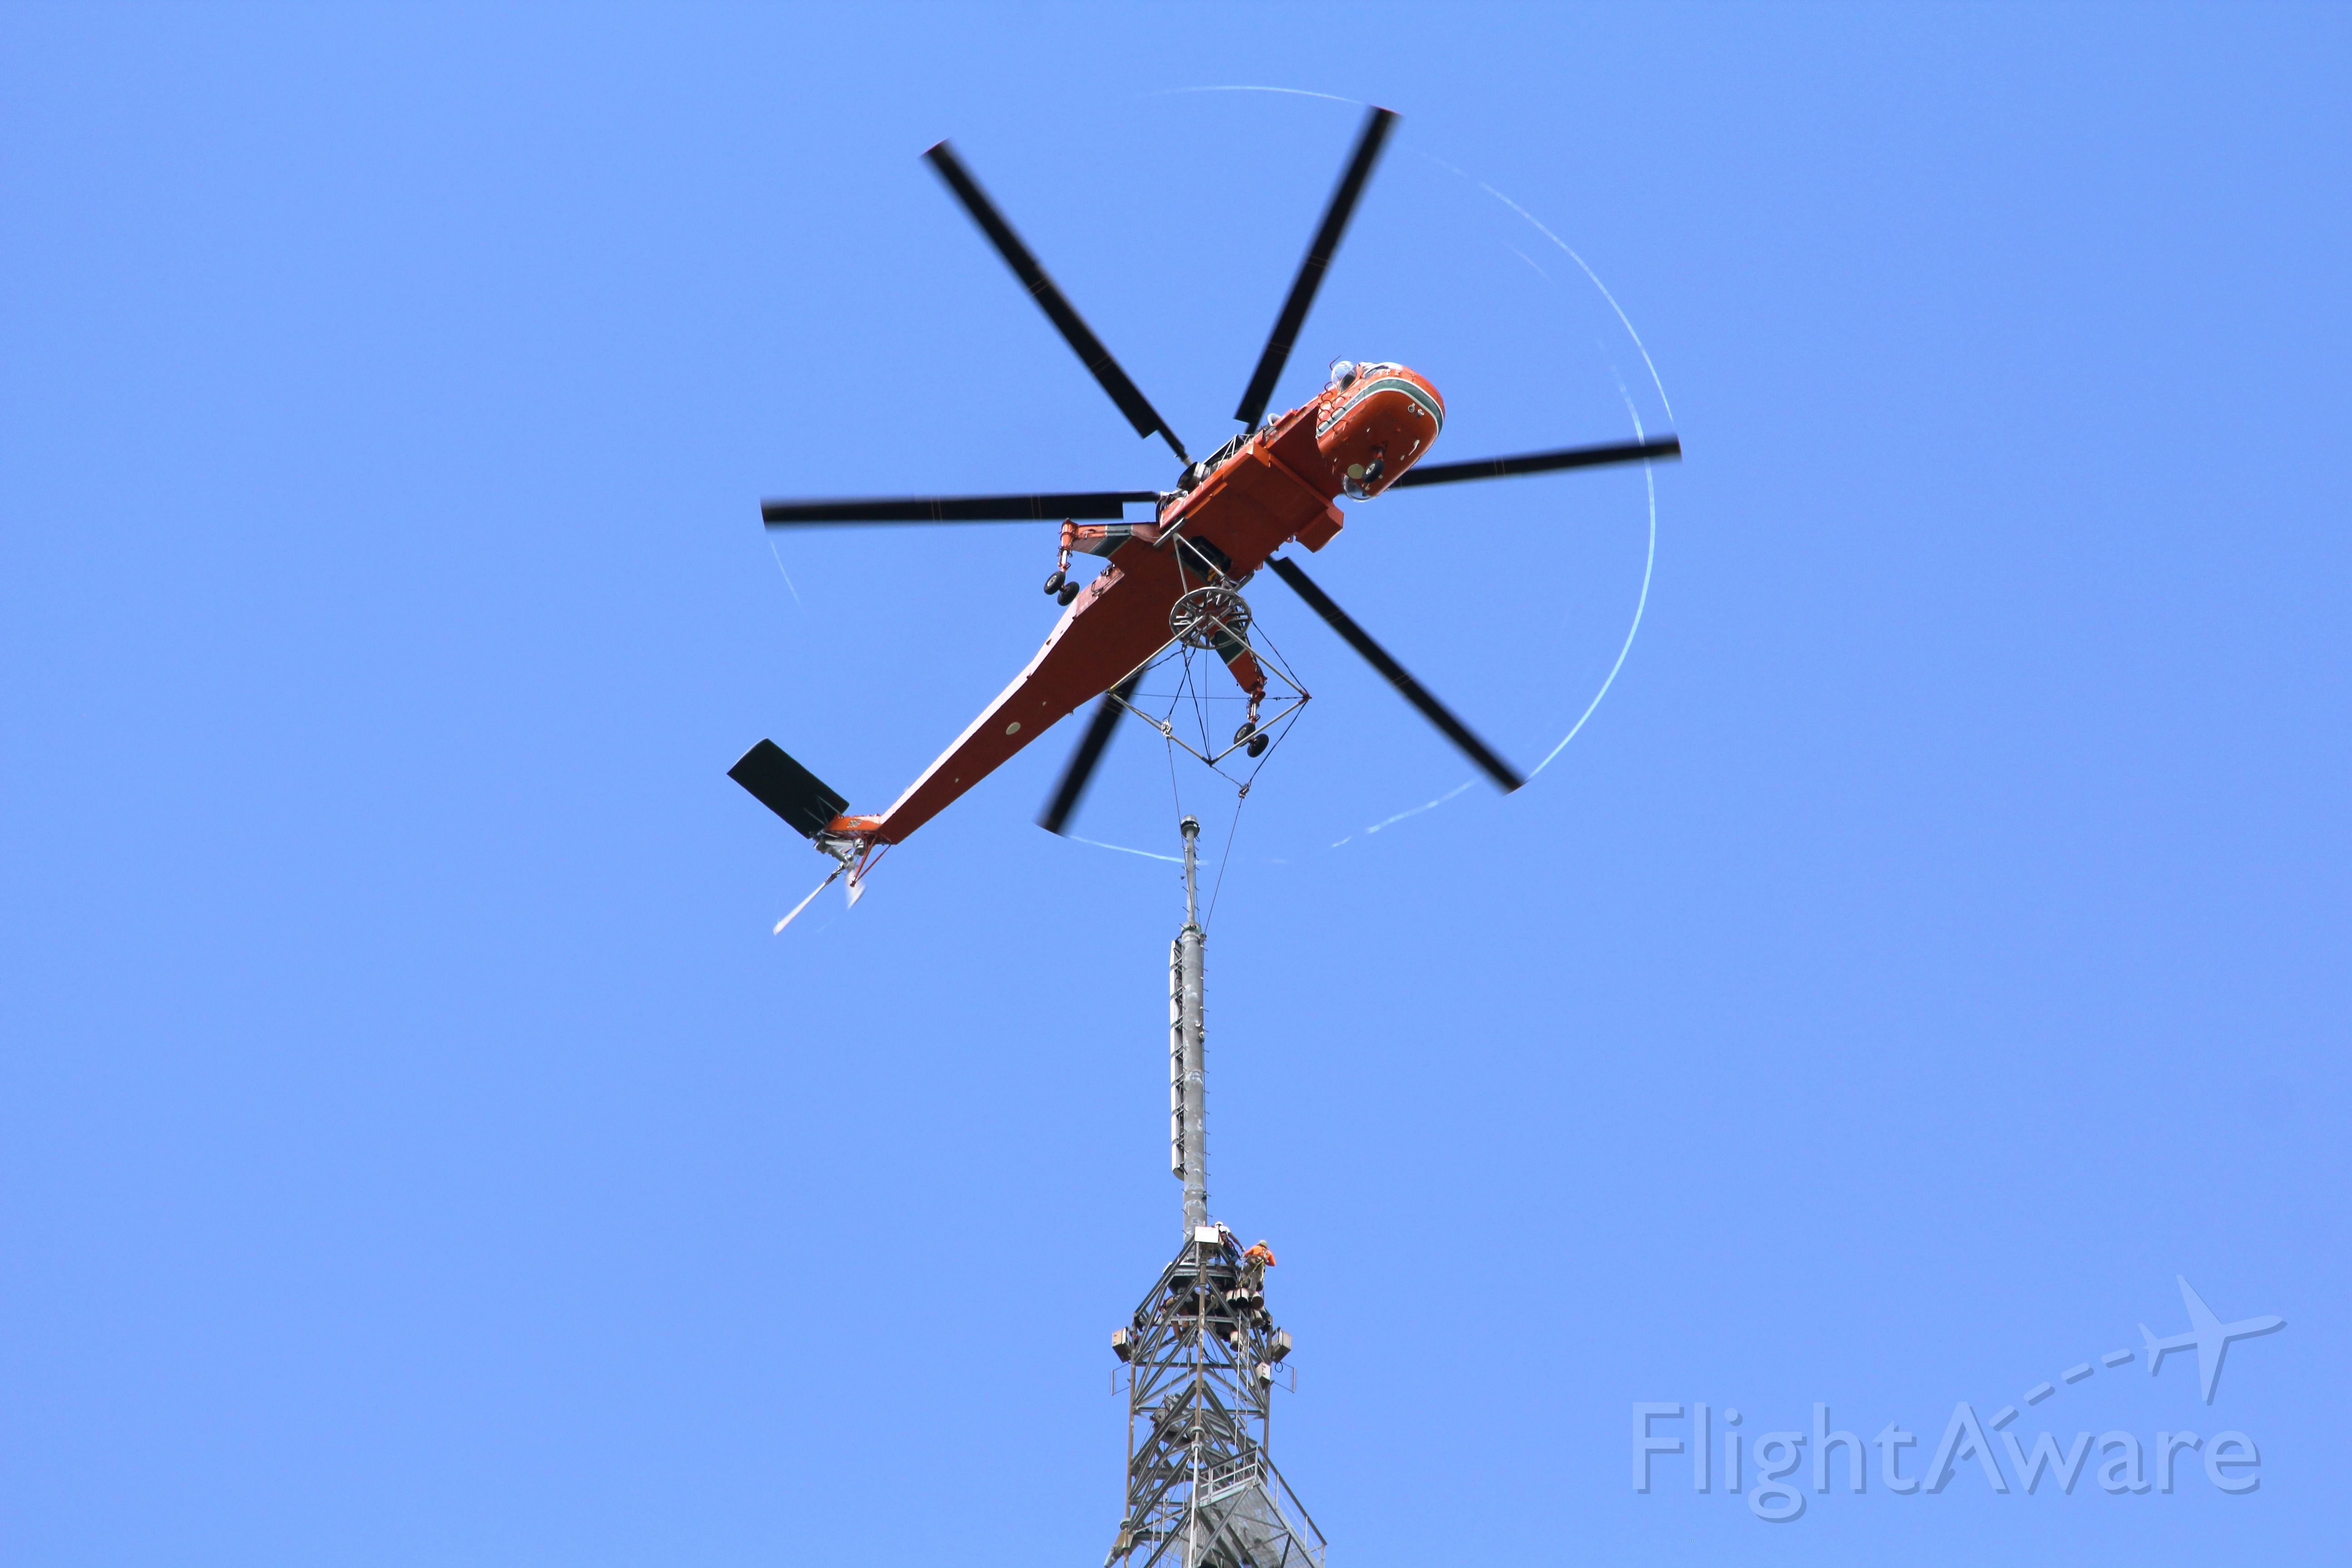 Sikorsky CH-54 Tarhe (N163AC) - This was very cool. We had the Air Crane lift our new UHF TV antenna to the top of our 1868 ft tall tower near Orlando FL. You can see the vapor trails streaming from the blade tips. The antenna weighed 14,000 lbs.